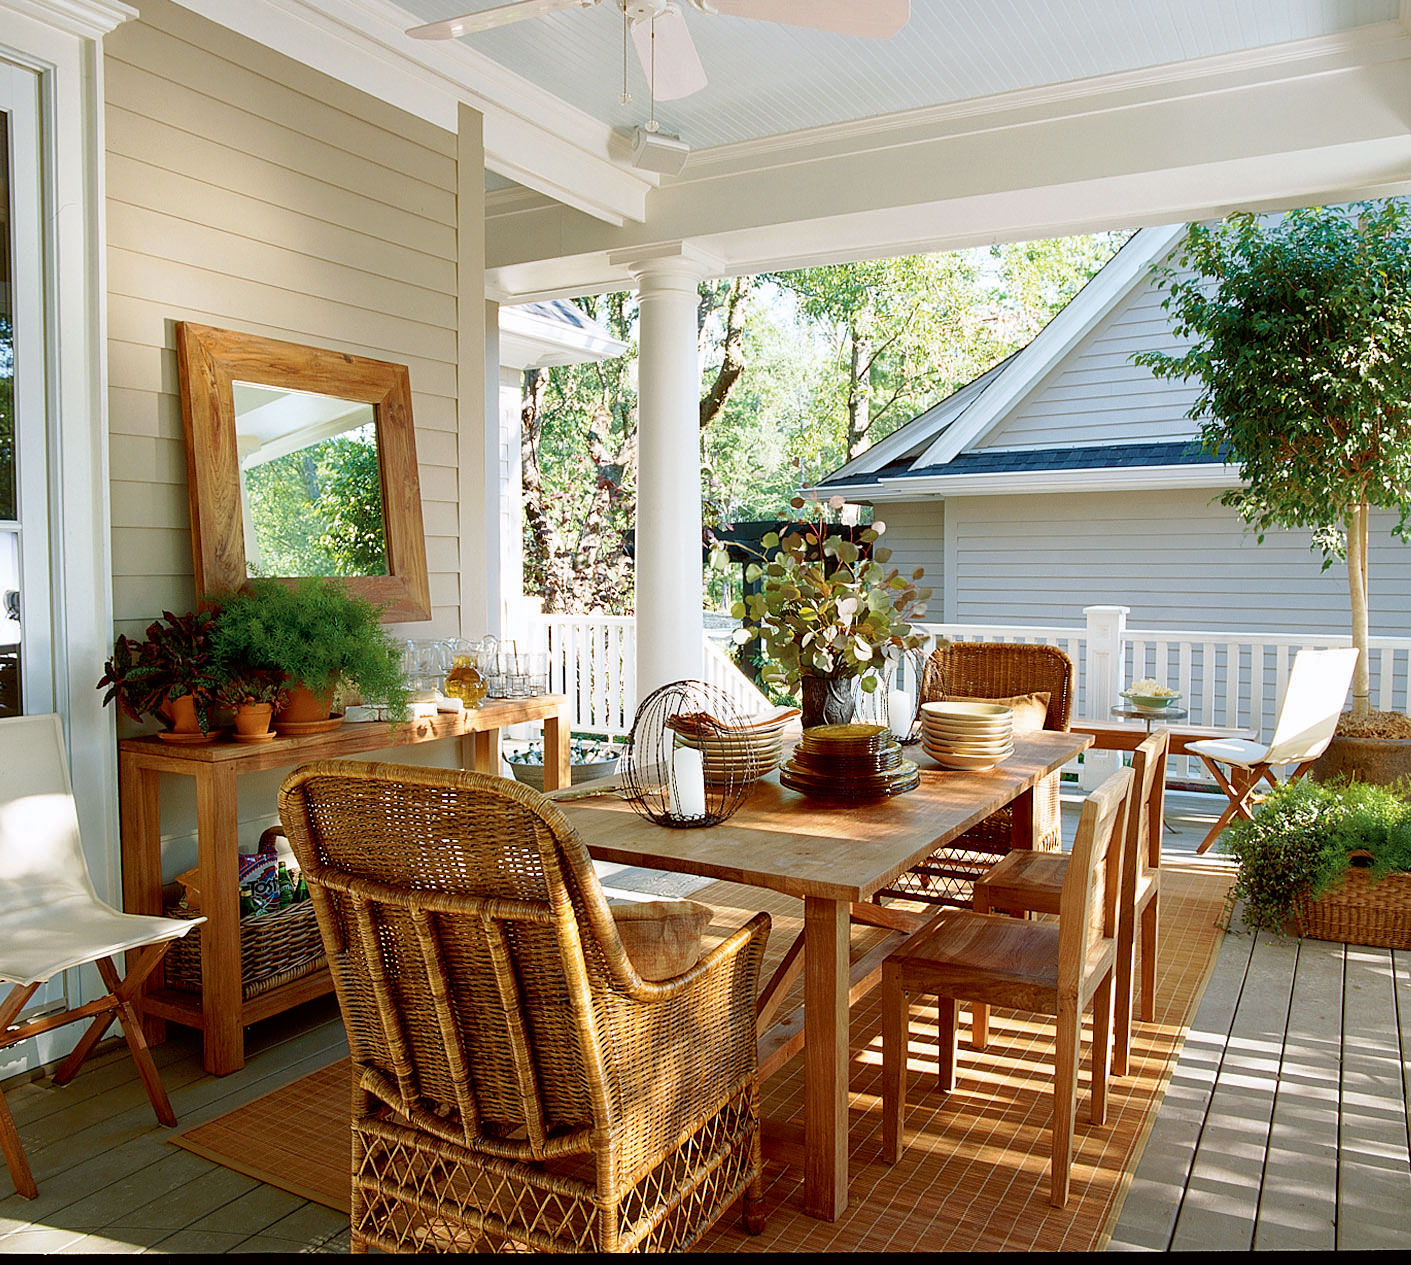 Porch Design Ideas related to outdoor rooms porches home improvement design 101 65 Best Patio Designs For 2017 Ideas For Front Porch And Patio Decorating